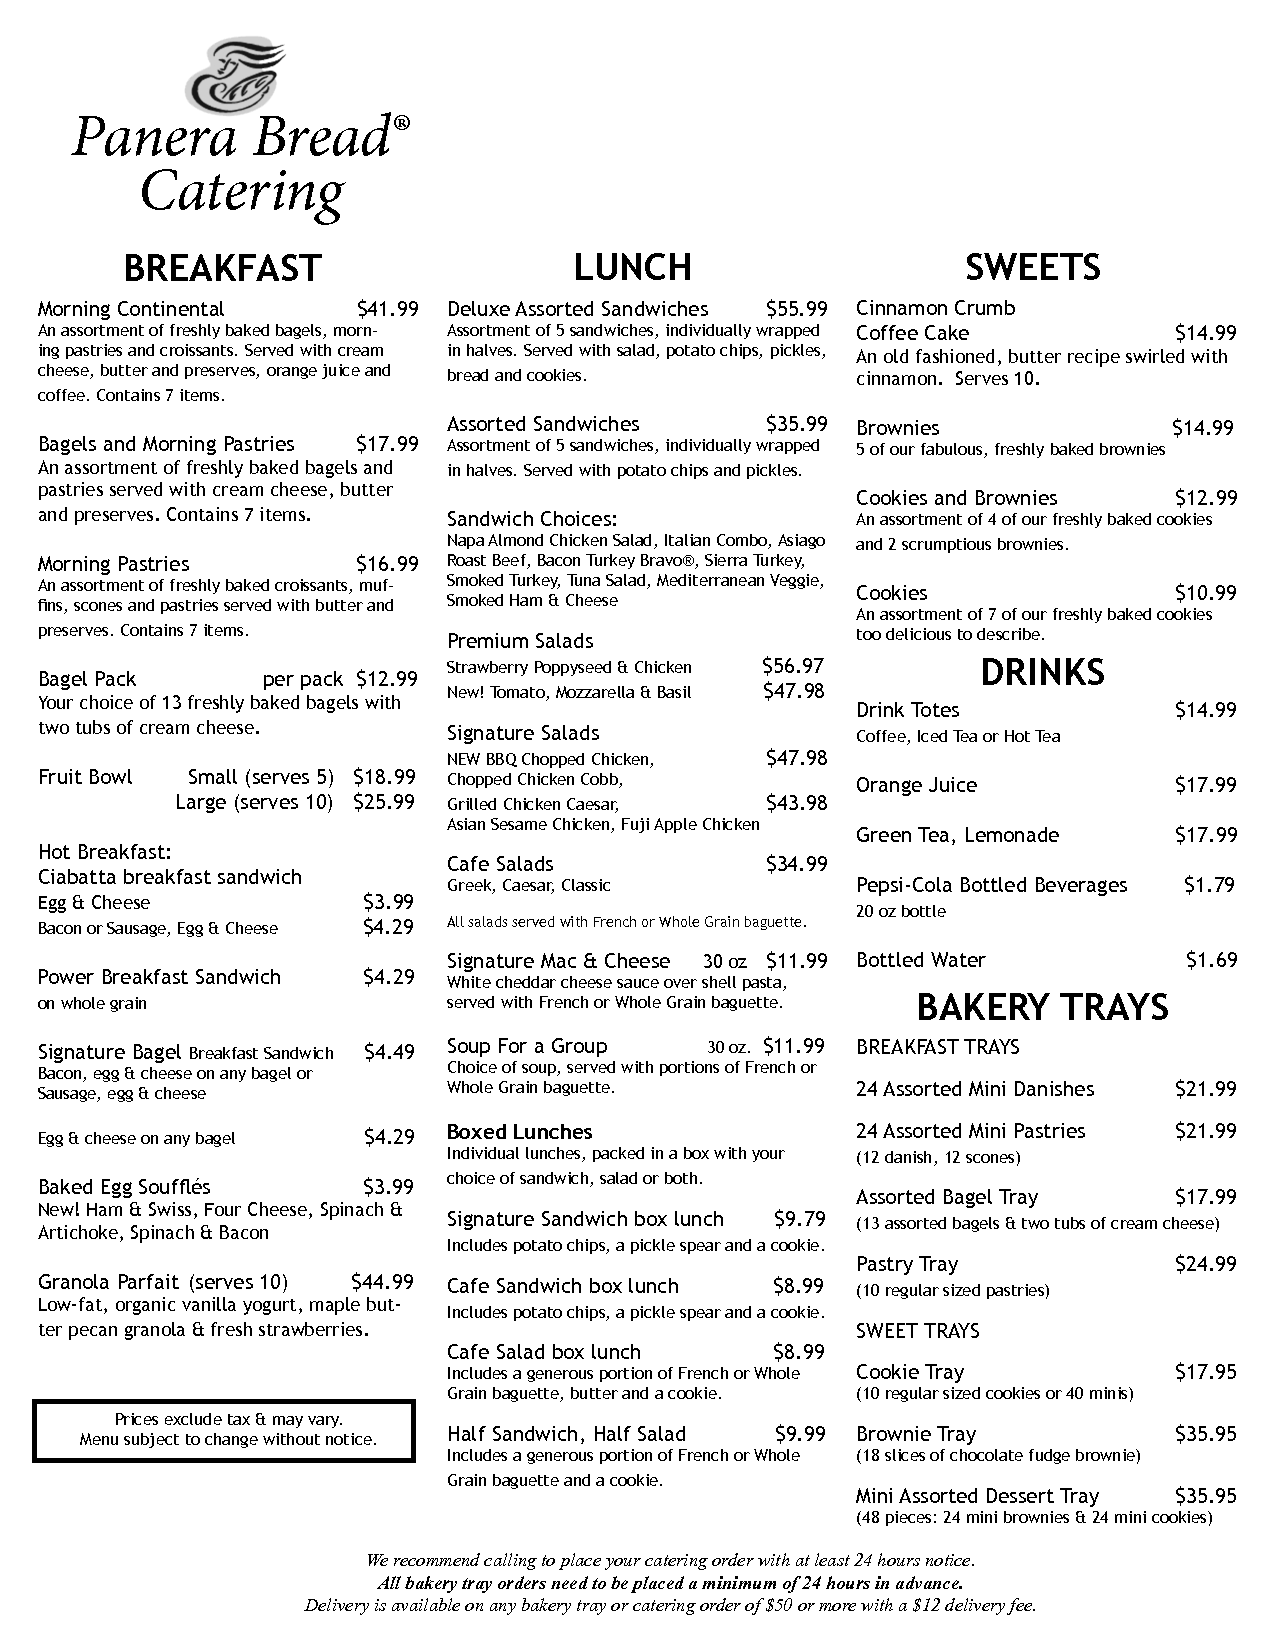 panera bread printable menu 8 best images of panera printable menu panera bread menu 23892